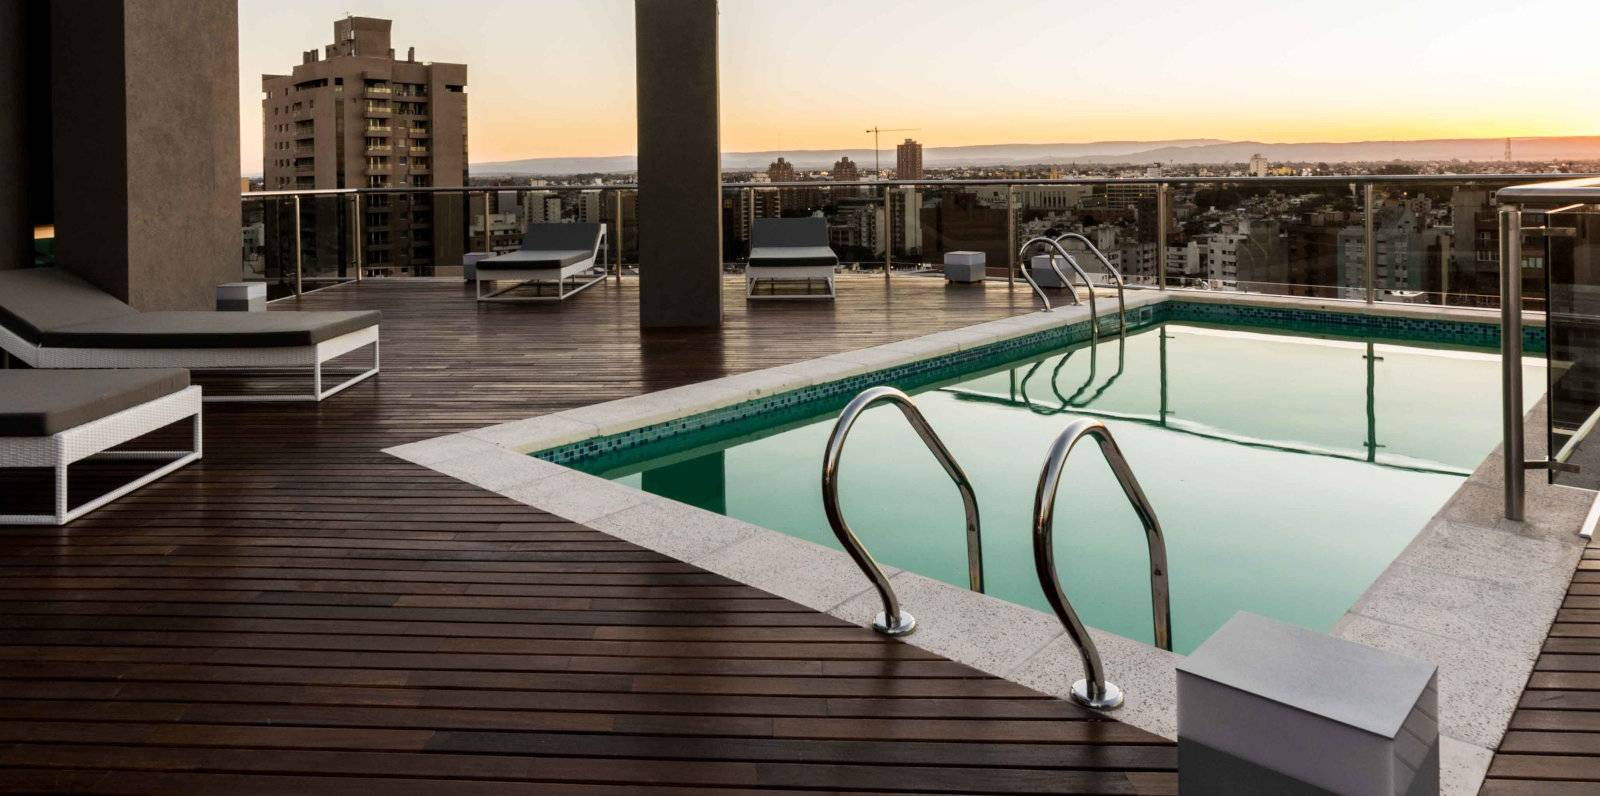 Gay hotels in Córdoba - the beautiful pool and sunset views from Yrigoyen 111.